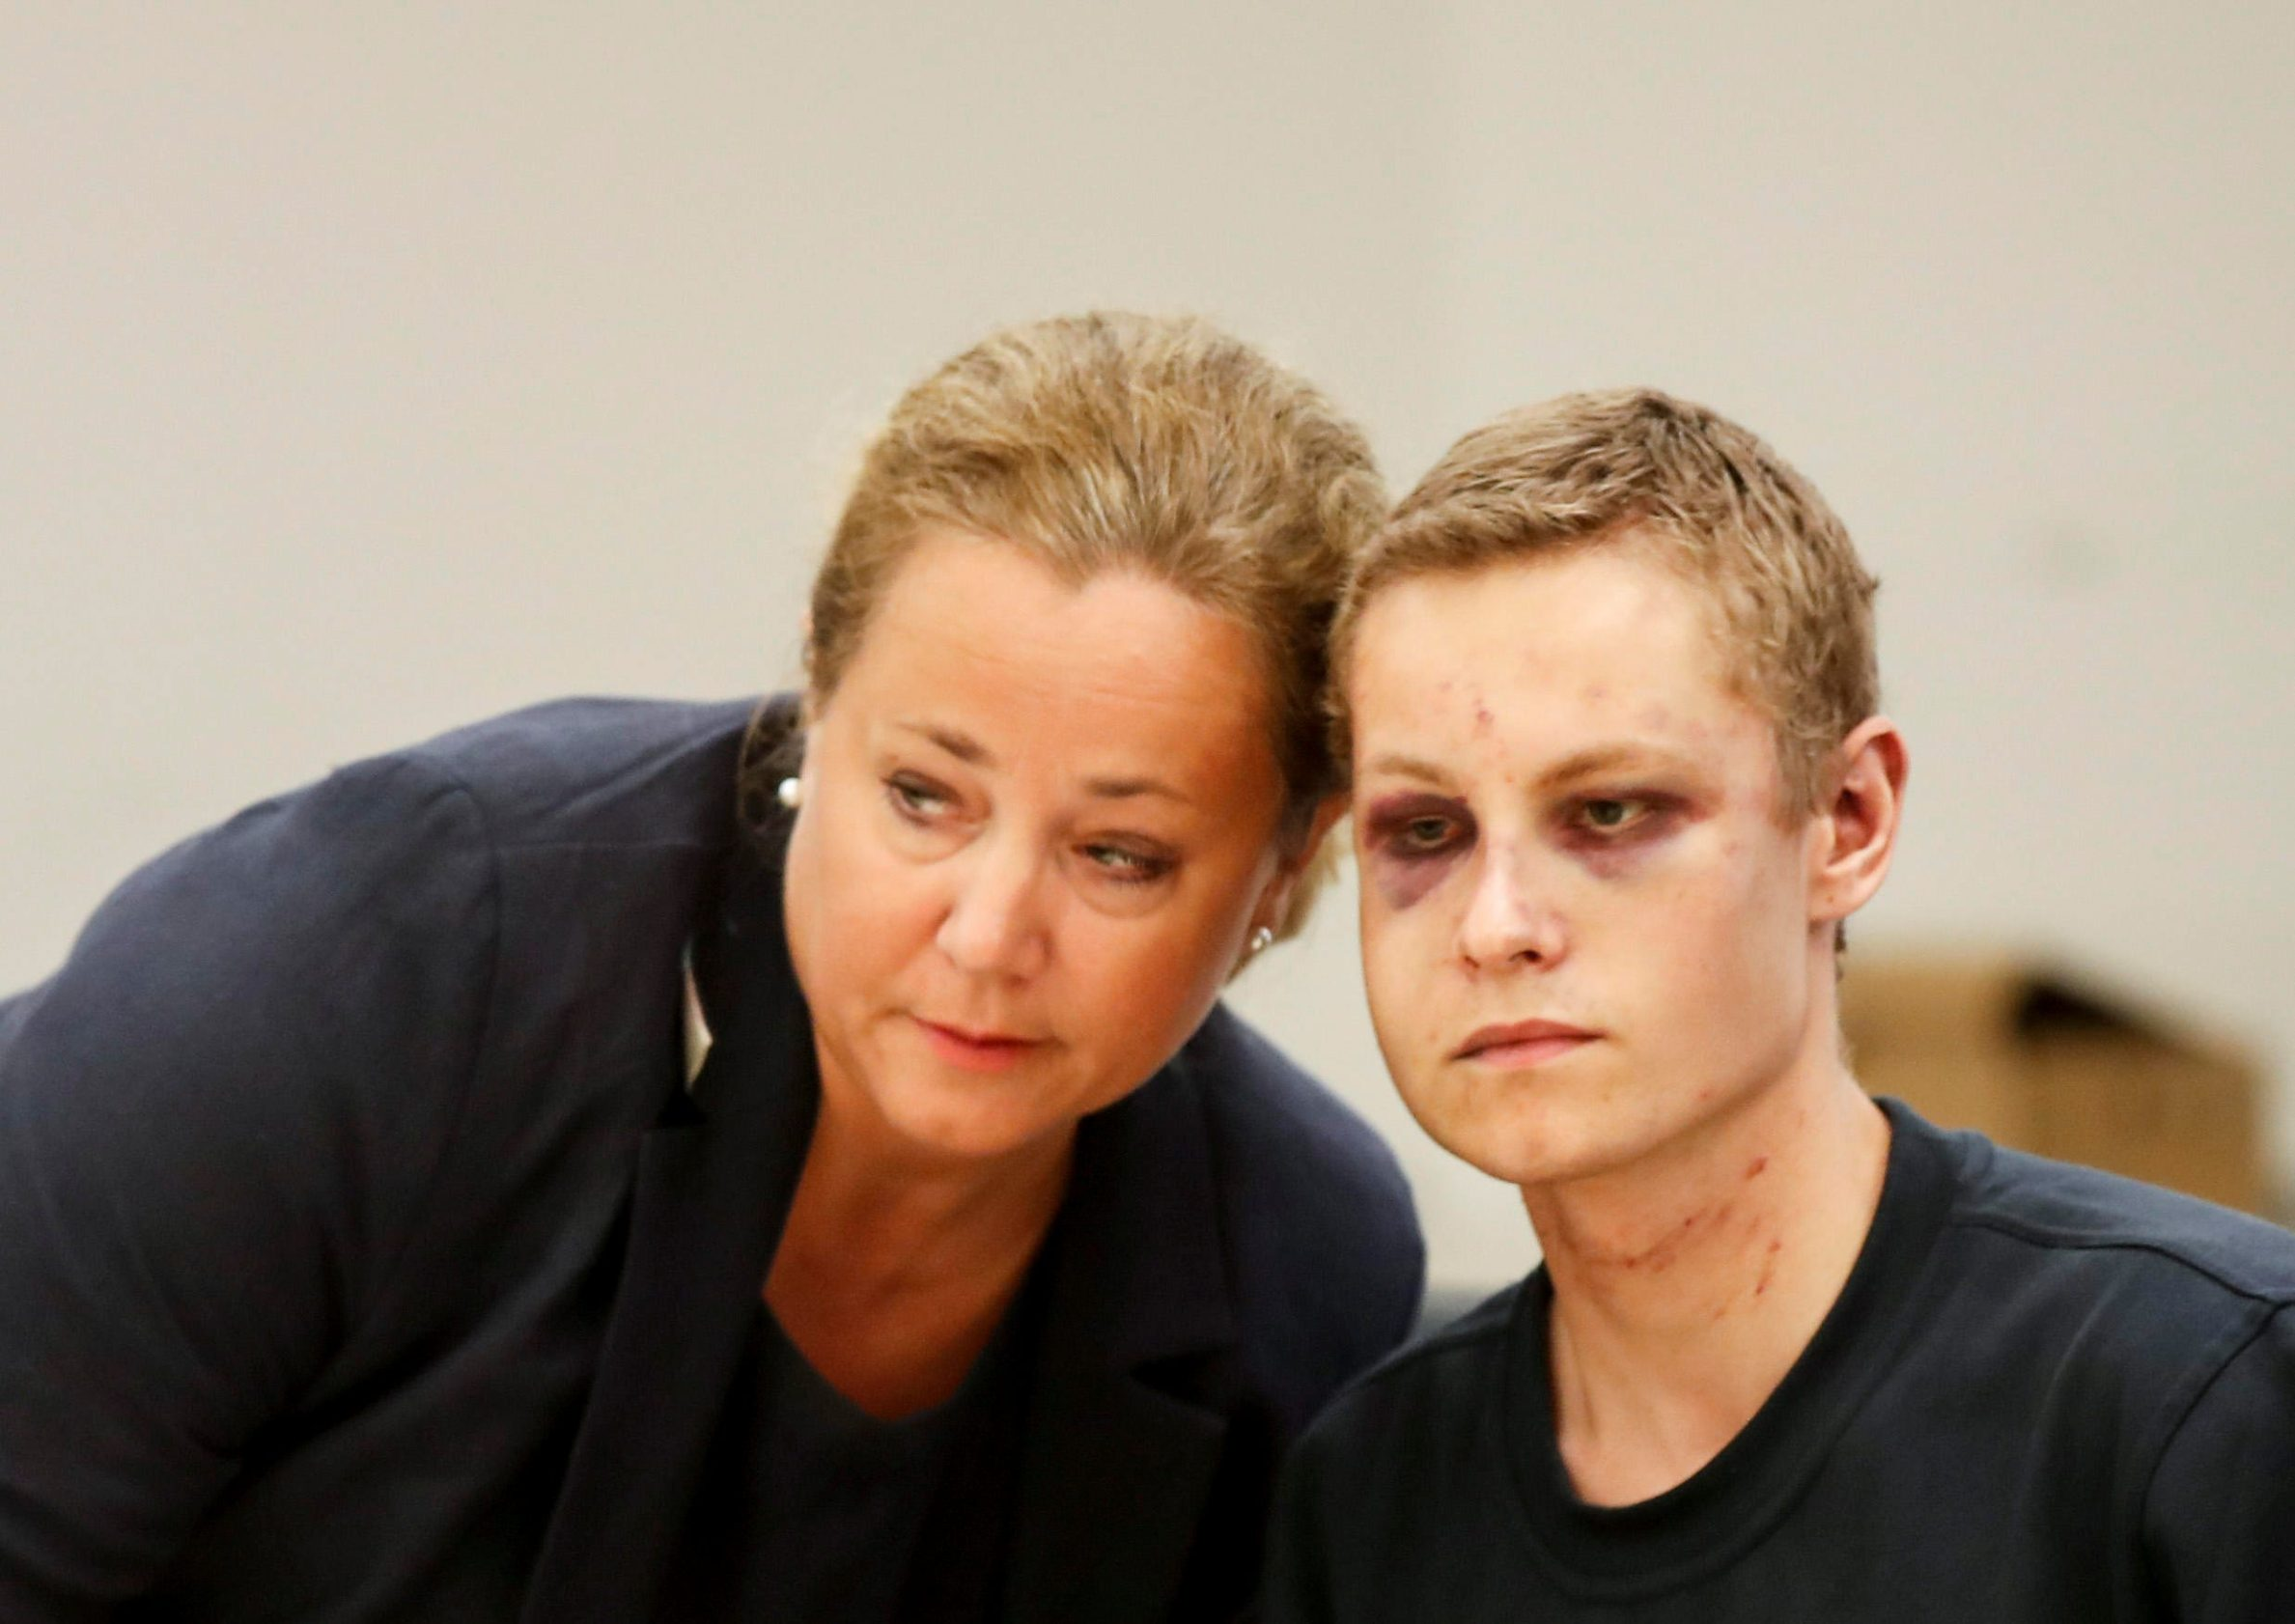 Philip Manshaus, who is suspected of an armed attack at Al-Noor Islamic Centre Mosque and killing his stepsister and his lawyer Unni Fries appear in court in Oslo, Norway, August 12, 2019. NTB Scanpix/Cornelius Poppe via REUTERS ATTENTION EDITORS - THIS IMAGE WAS PROVIDED BY A THIRD PARTY. NORWAY OUT. NO COMMERCIAL OR EDITORIAL SALES IN NORWAY.